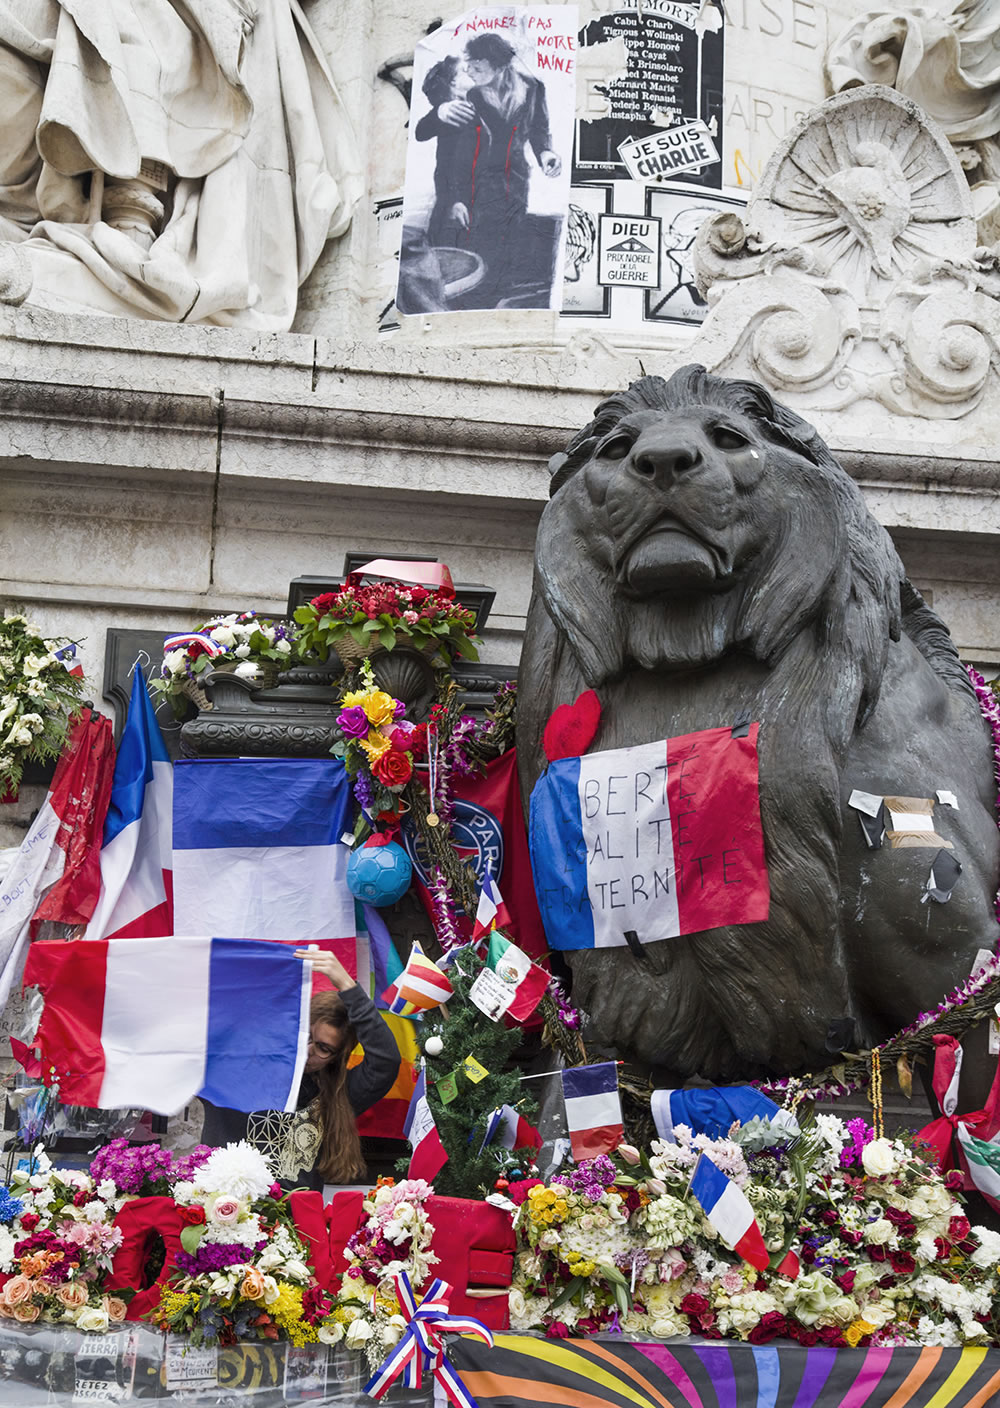 A young woman inspects a French flag on the collective memorial in the center of Place de la République, Paris.  The memorial was damaged on Sunday during conflict between police and protesters.